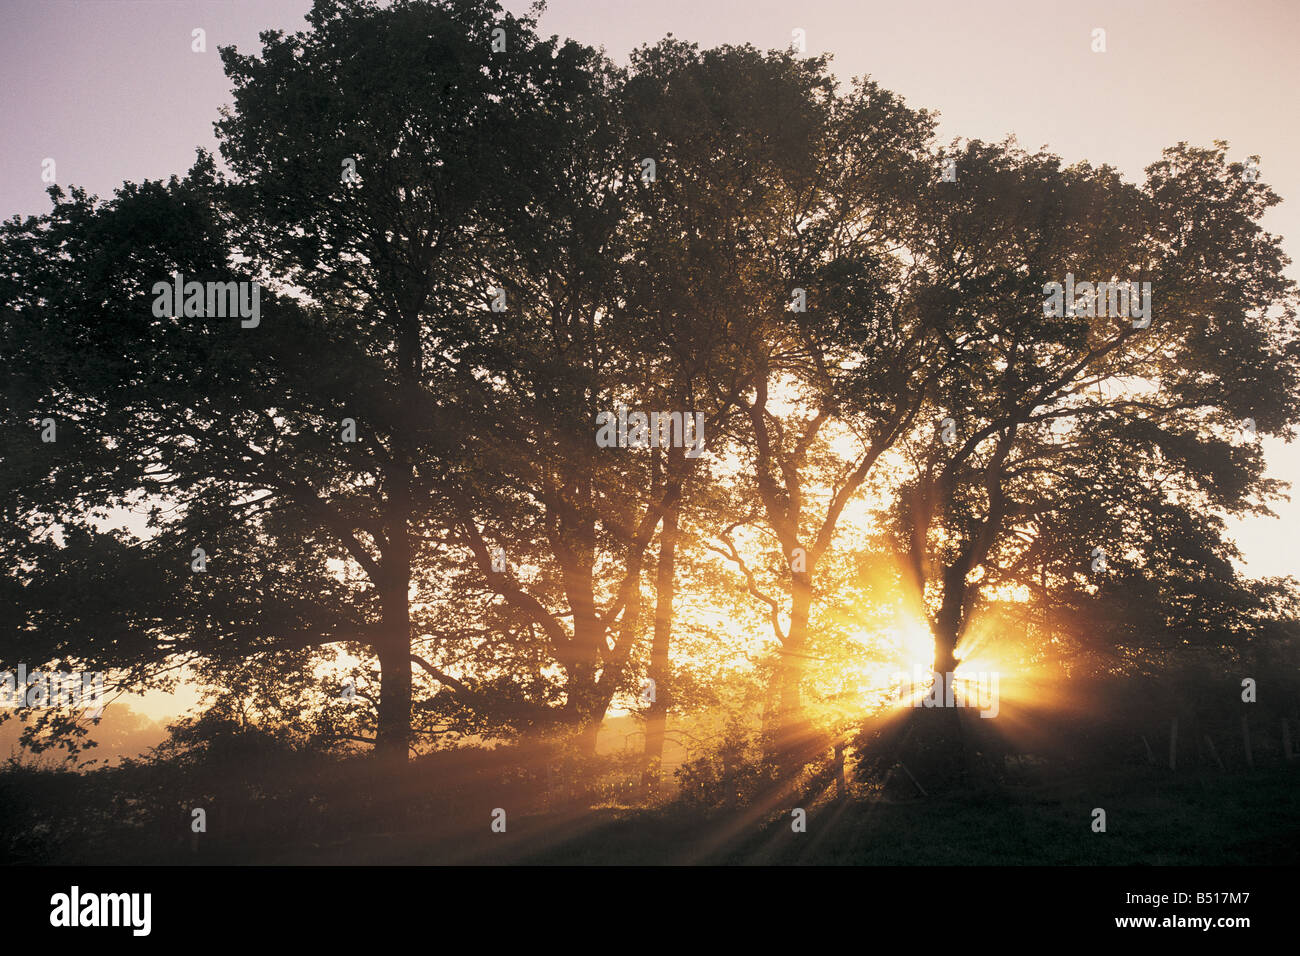 Sun in trees, Brecon Beacons, Wales, UK - Stock Image